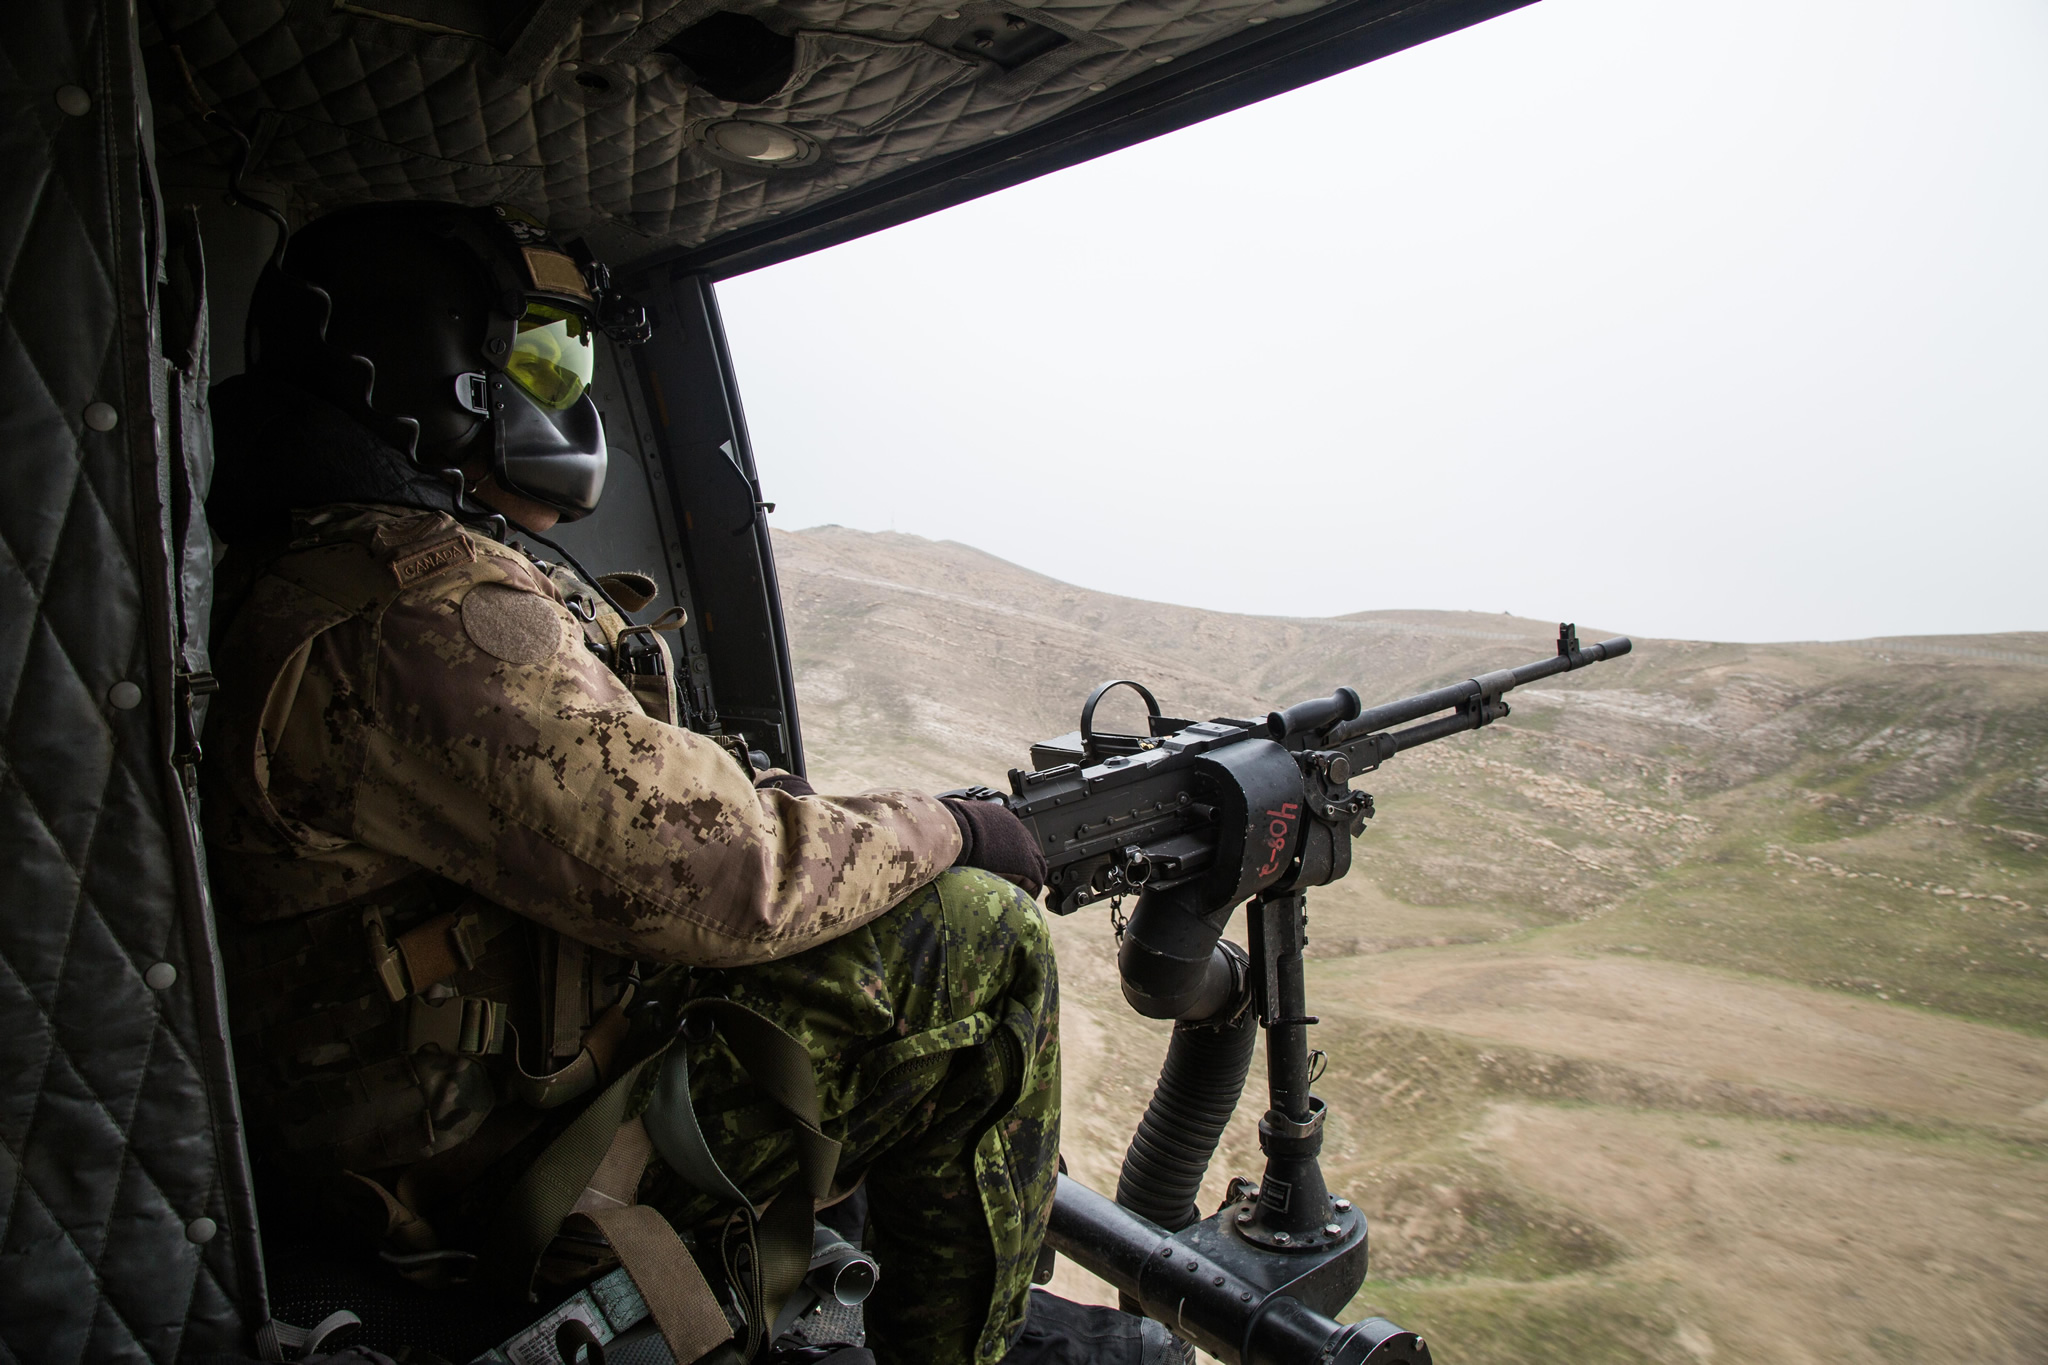 a military member looks out the side of a helicopter with a machine gun